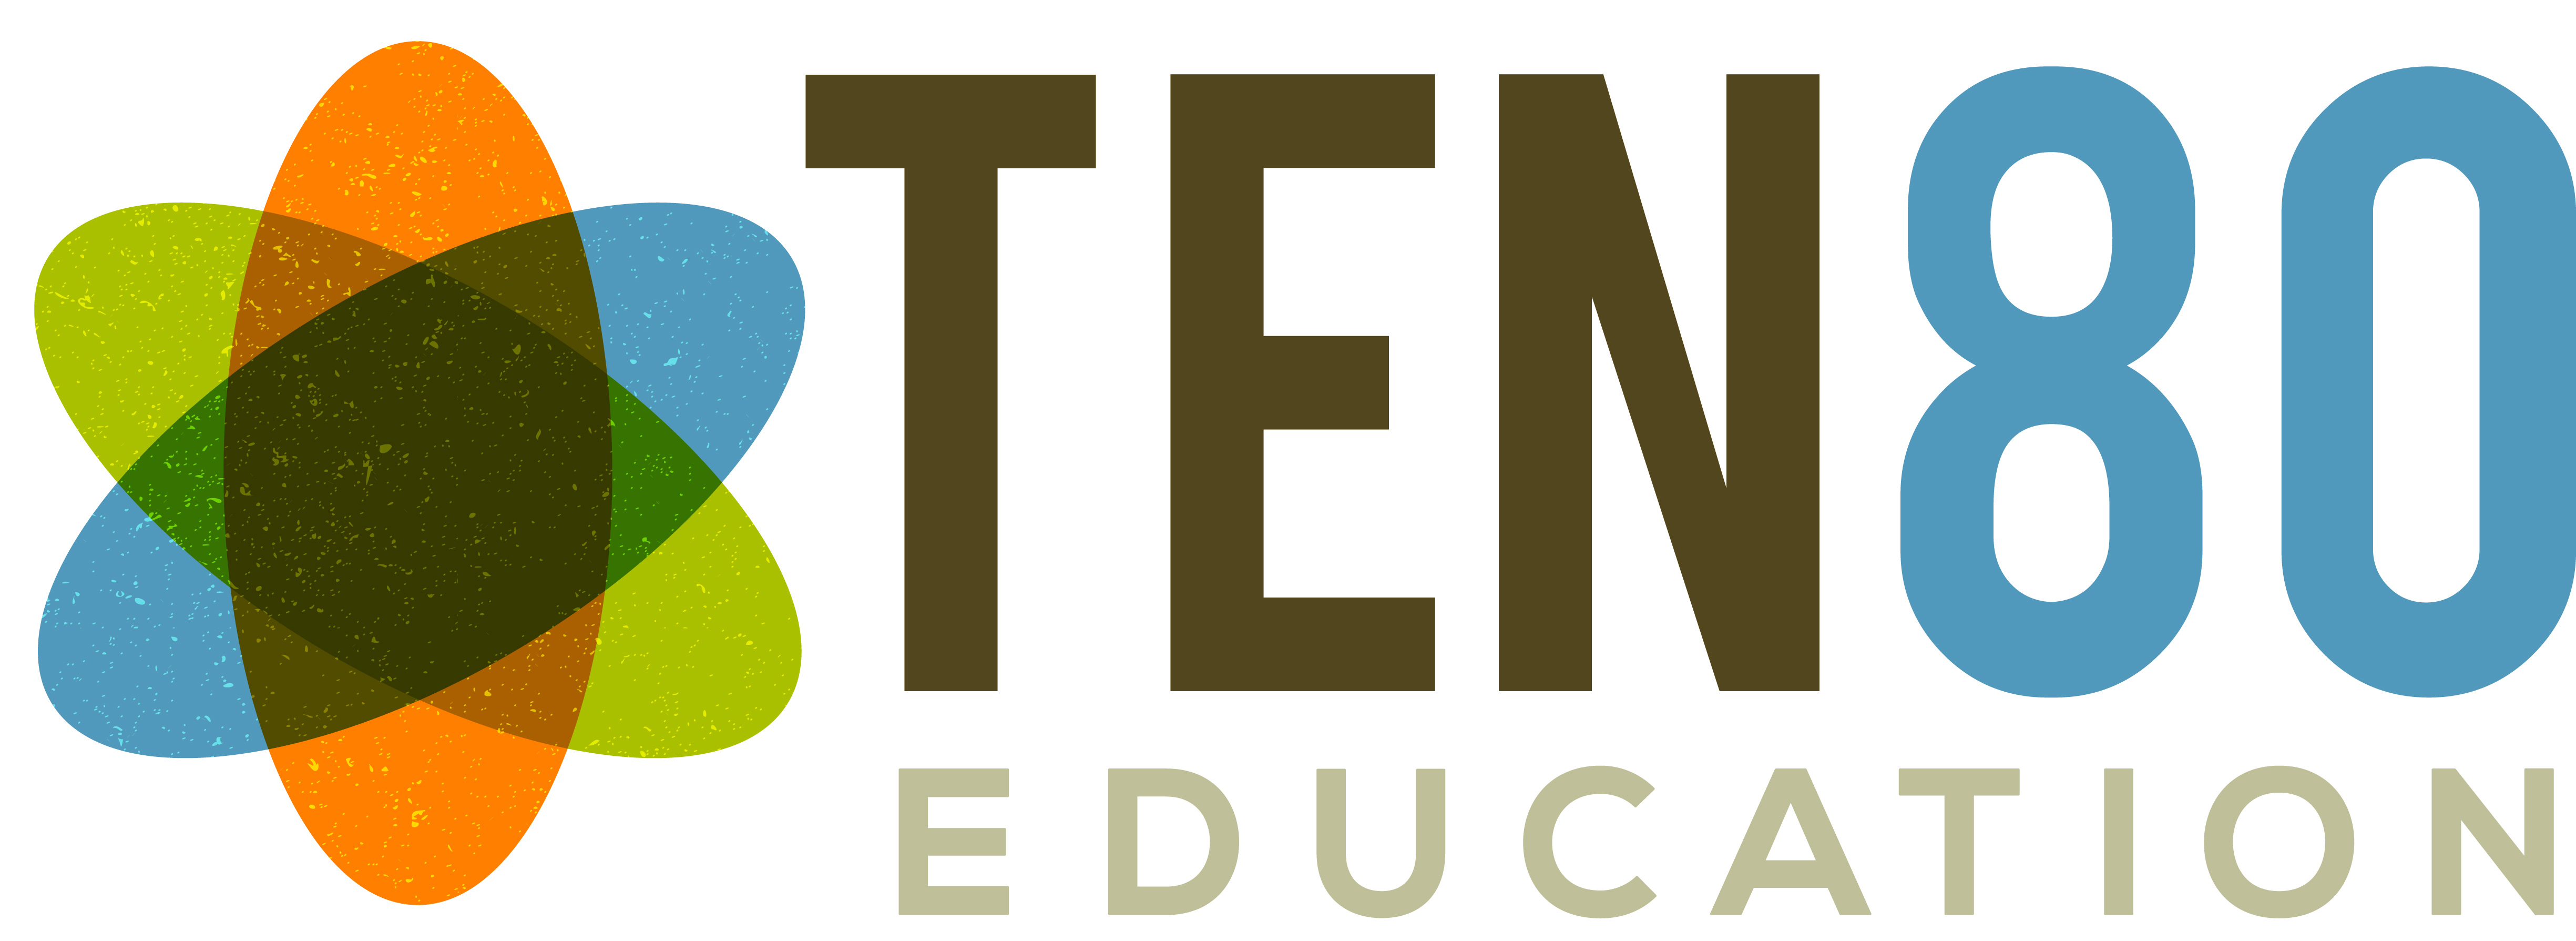 Ten80 Education logo